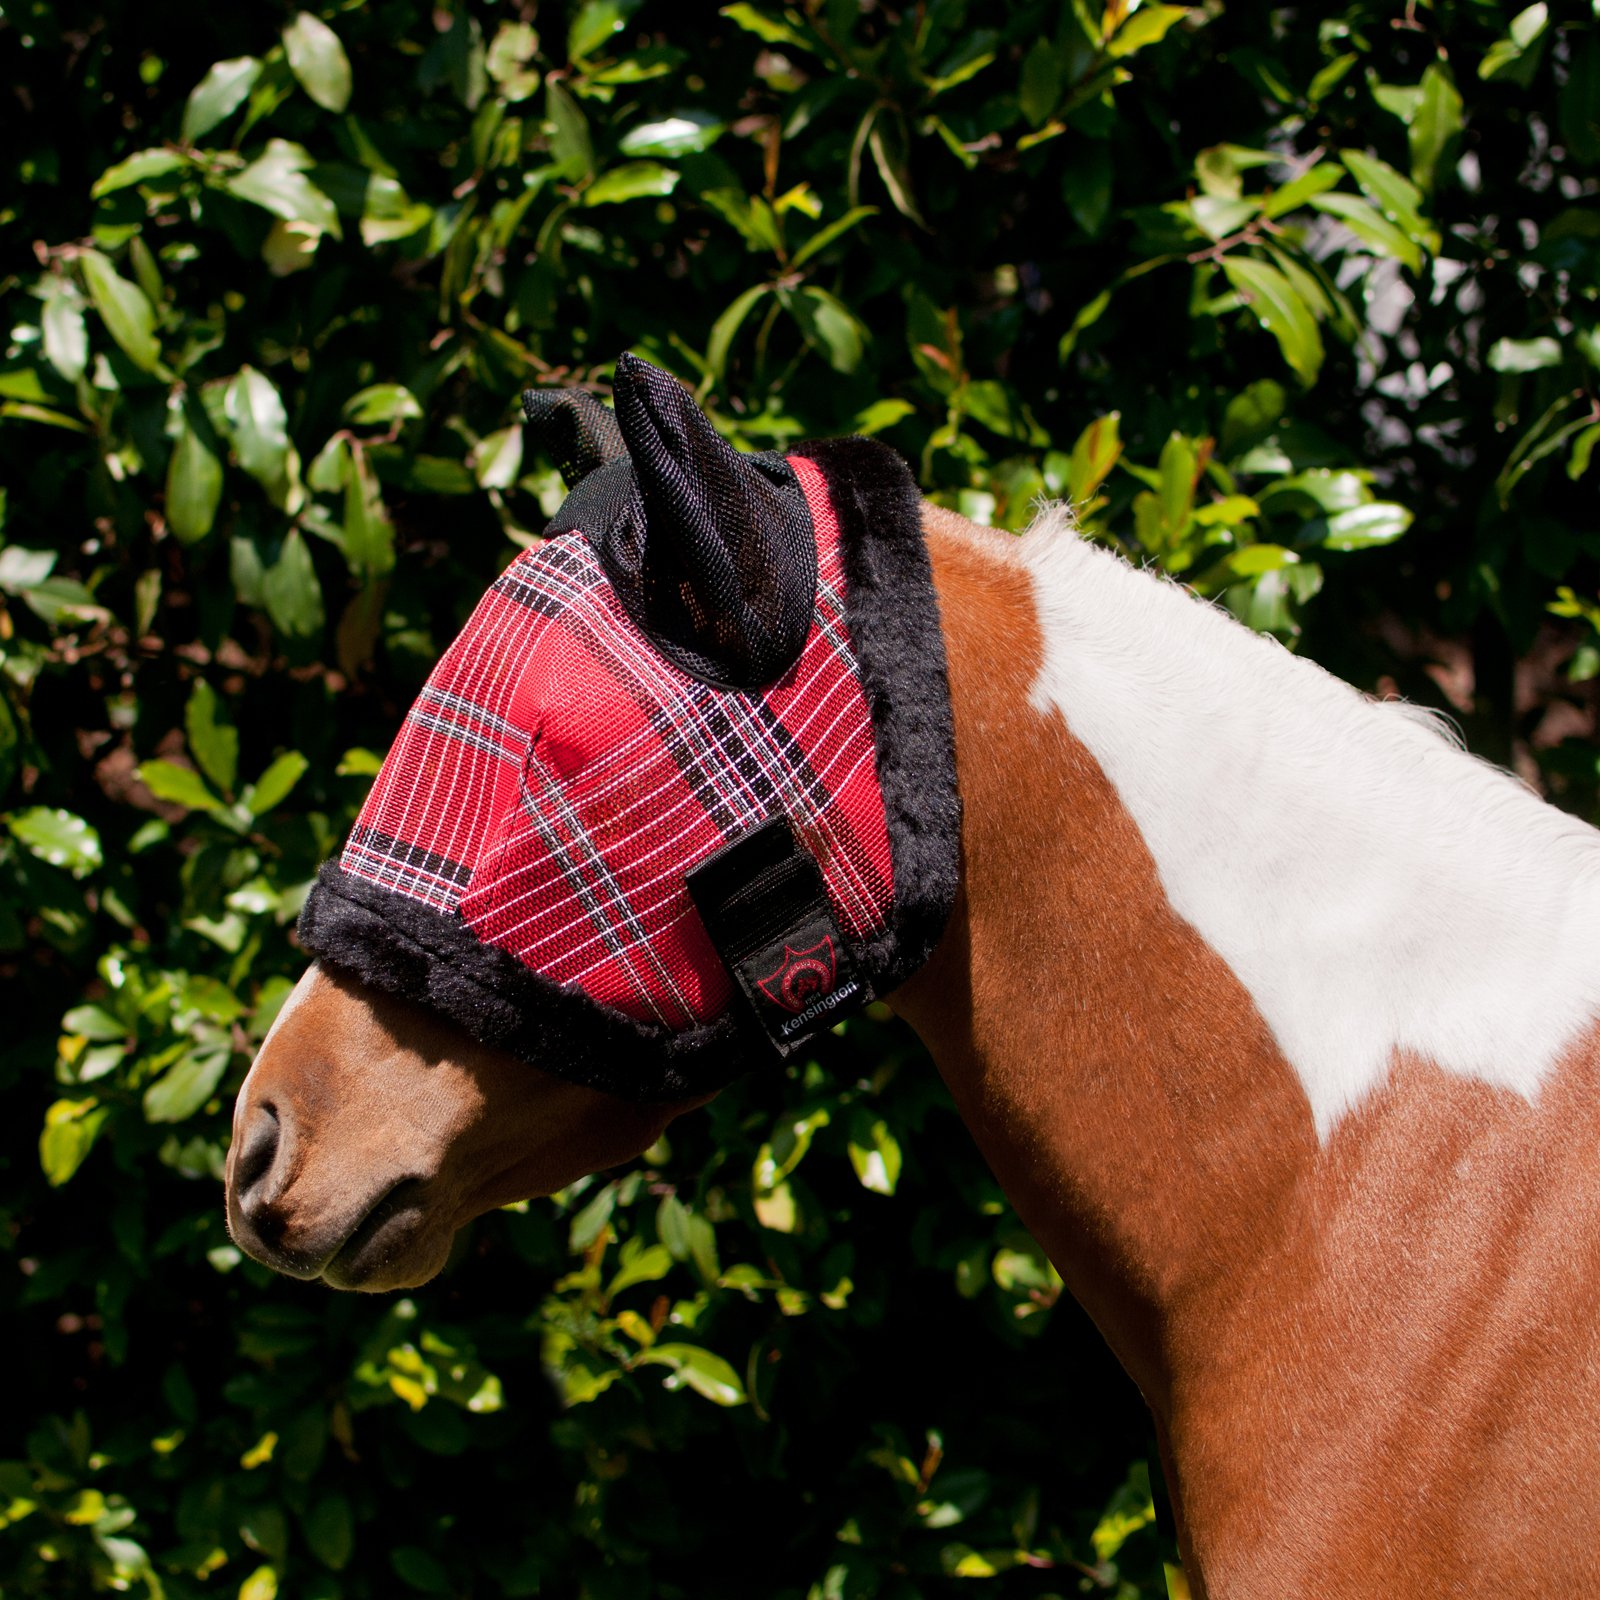 Kensington Protective Products Mini Fly Mask with Fleece And Soft Mesh Ears